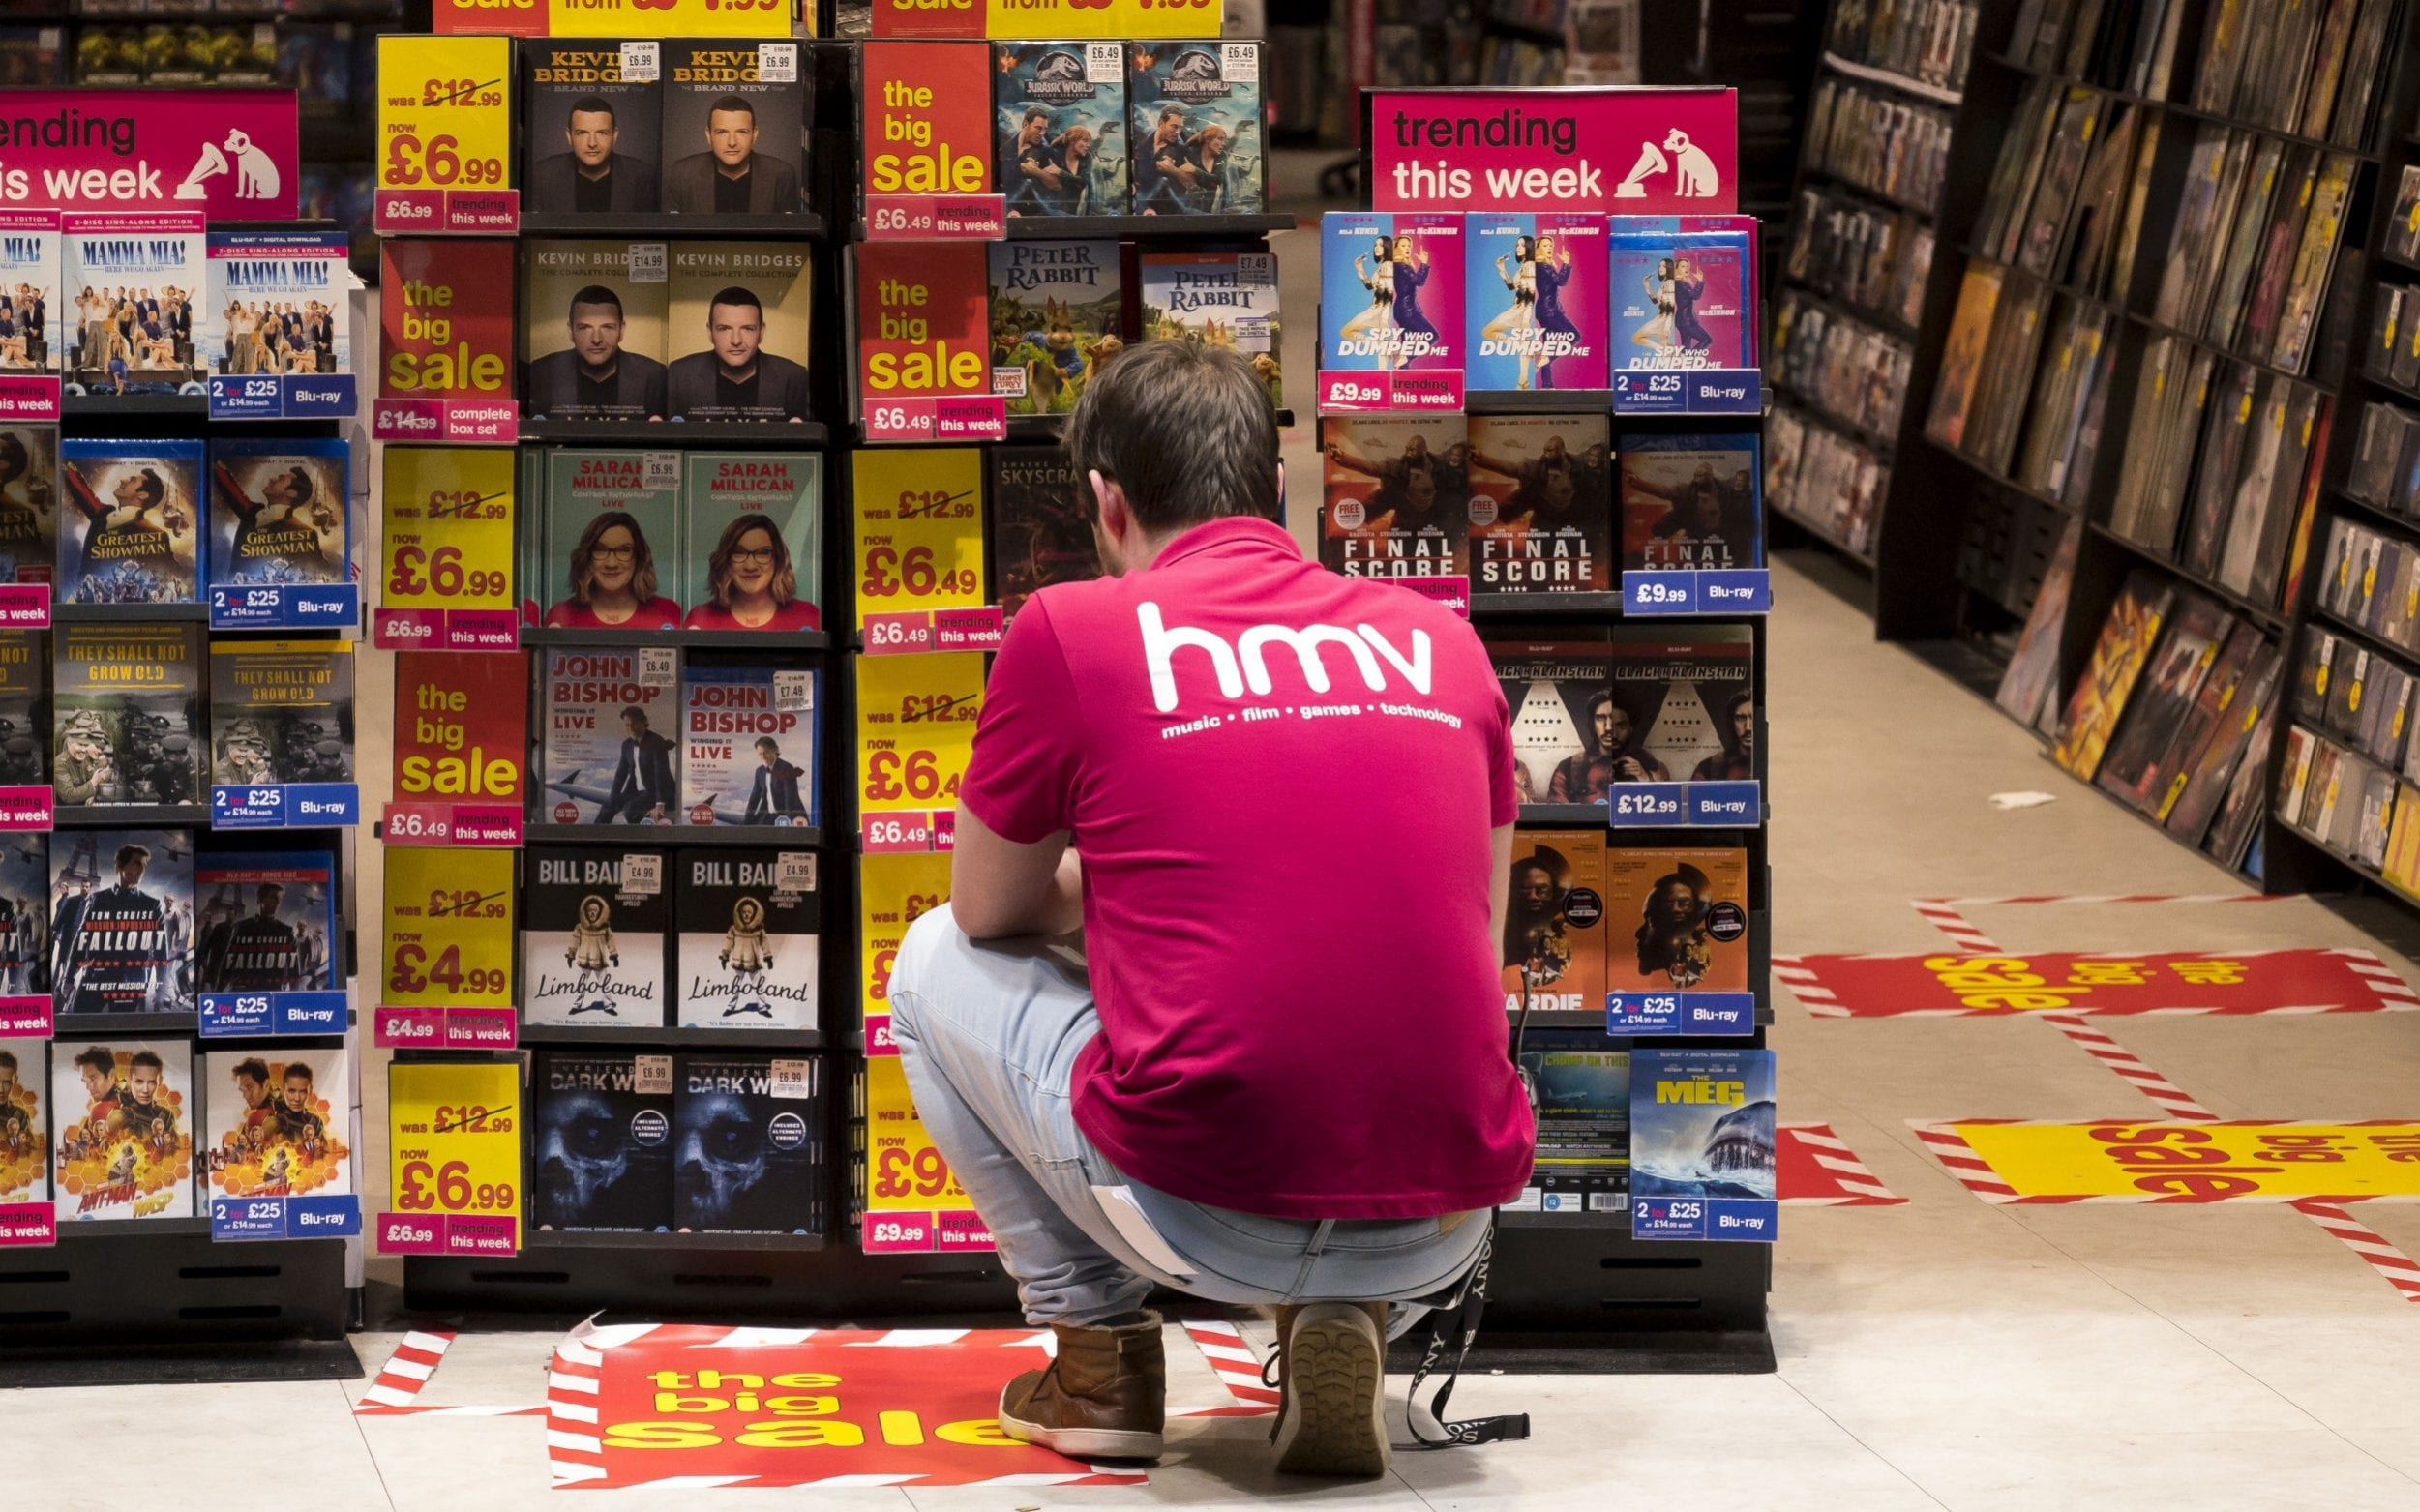 Without HMV. predictable streaming algorithms will ruin our taste in music